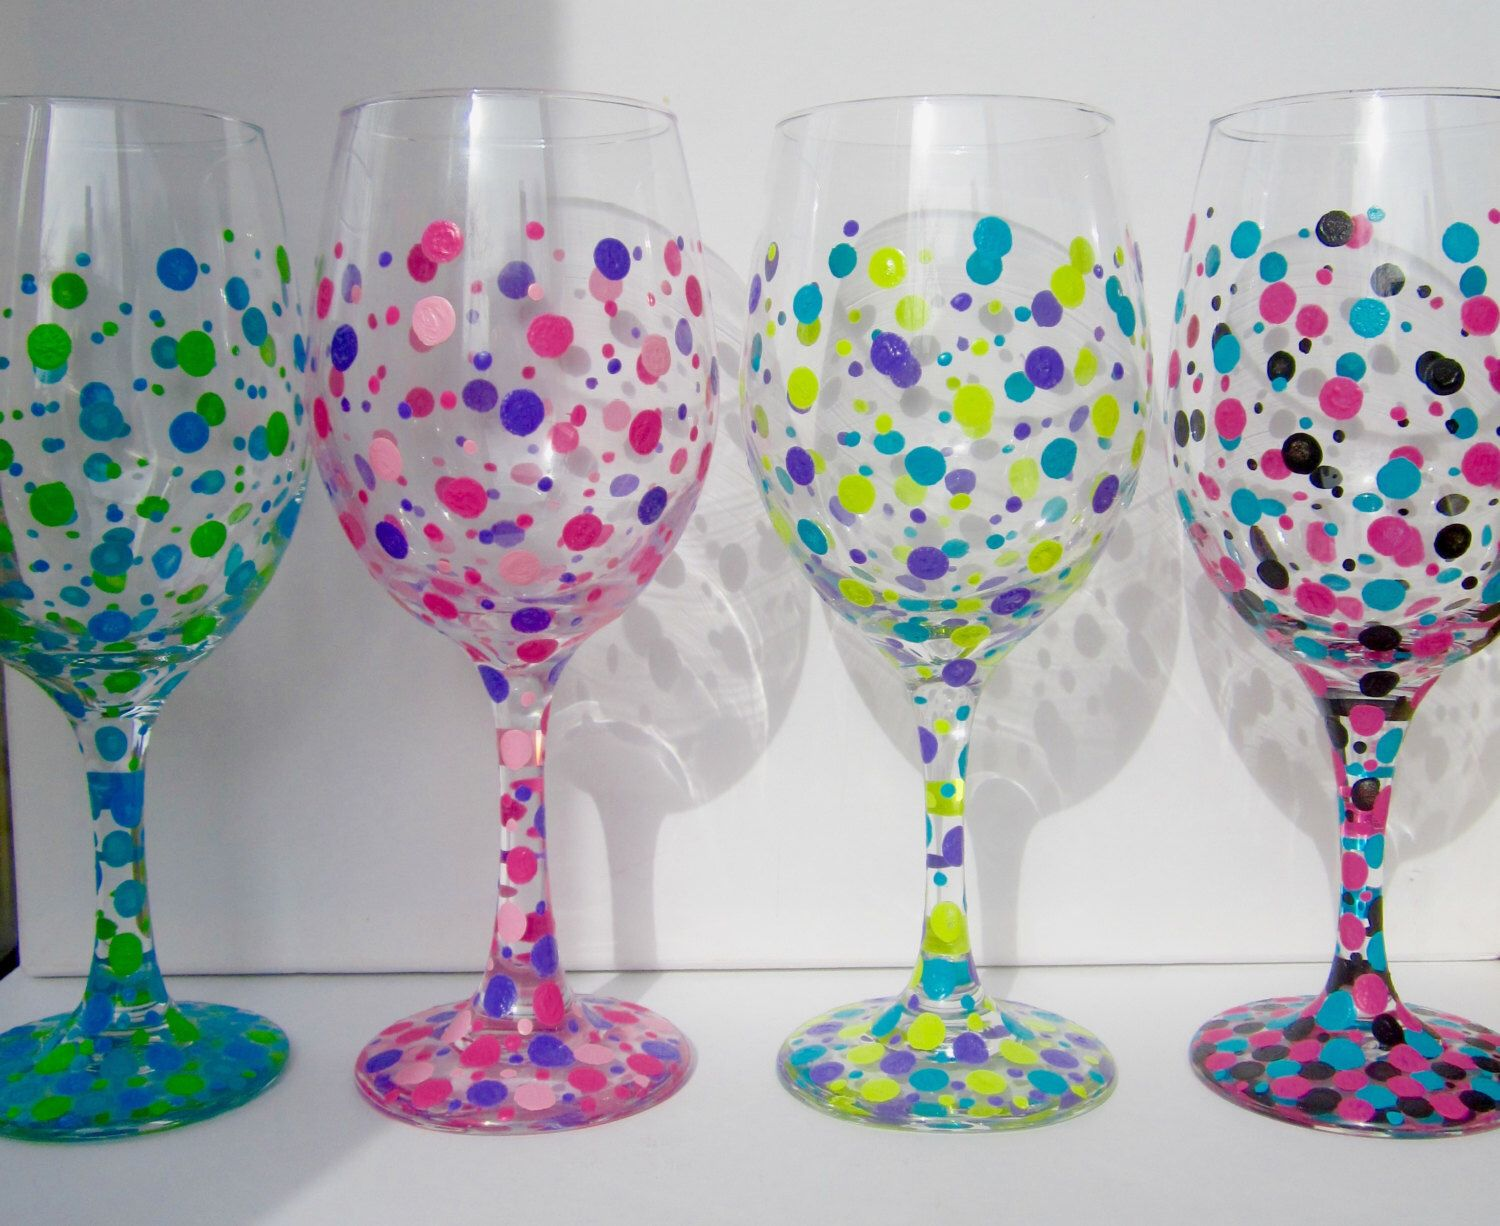 Four hand painted wine glasses polka dot wine glasses Images of painted wine glasses